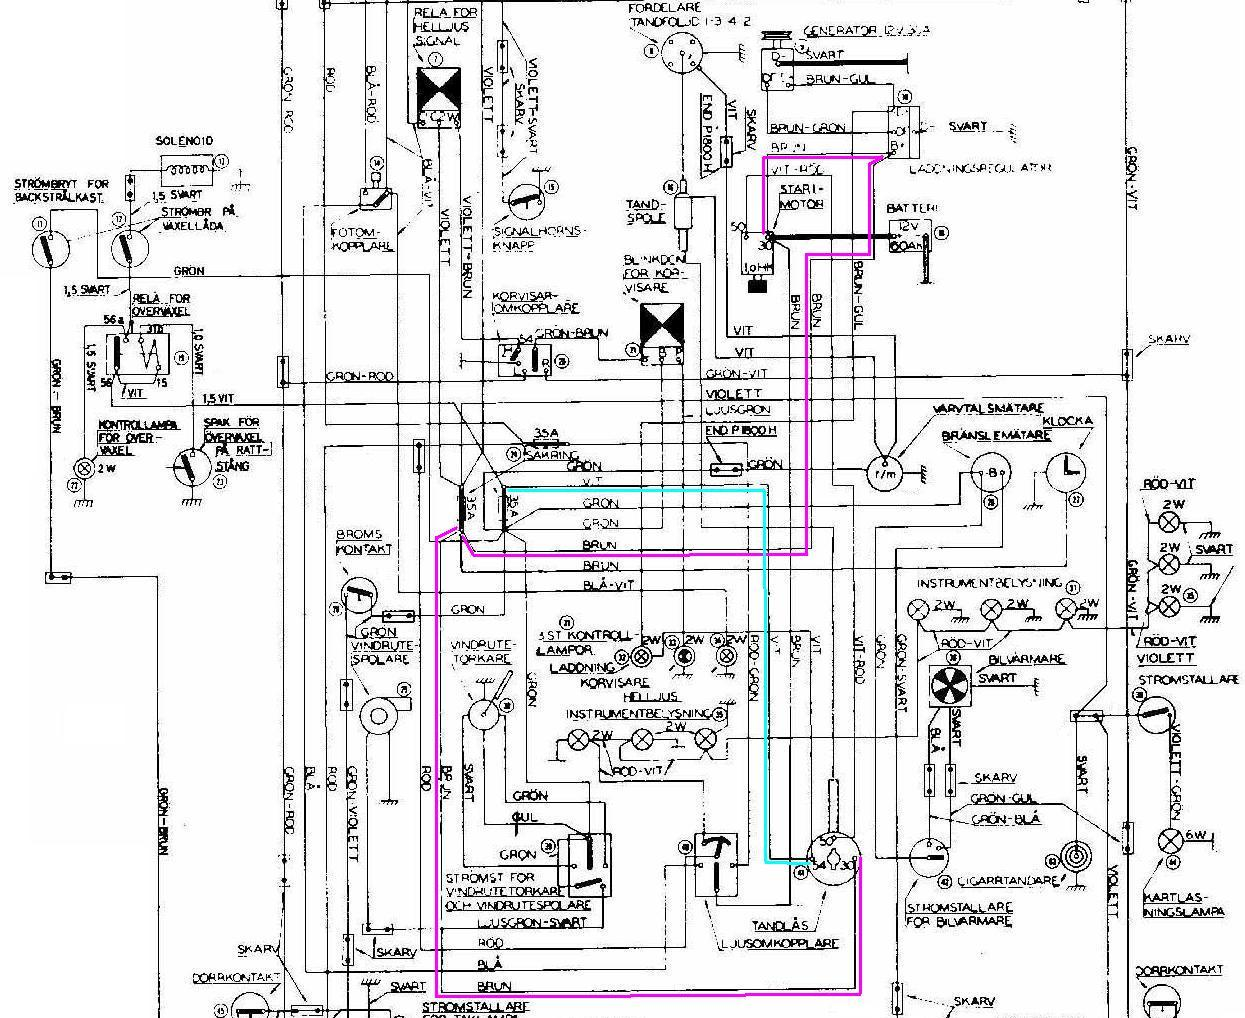 Volvo 1800 Wiring Harness Free Diagram For You Trailer Ignition Swedish Vs British Design Rh Sw Em Com